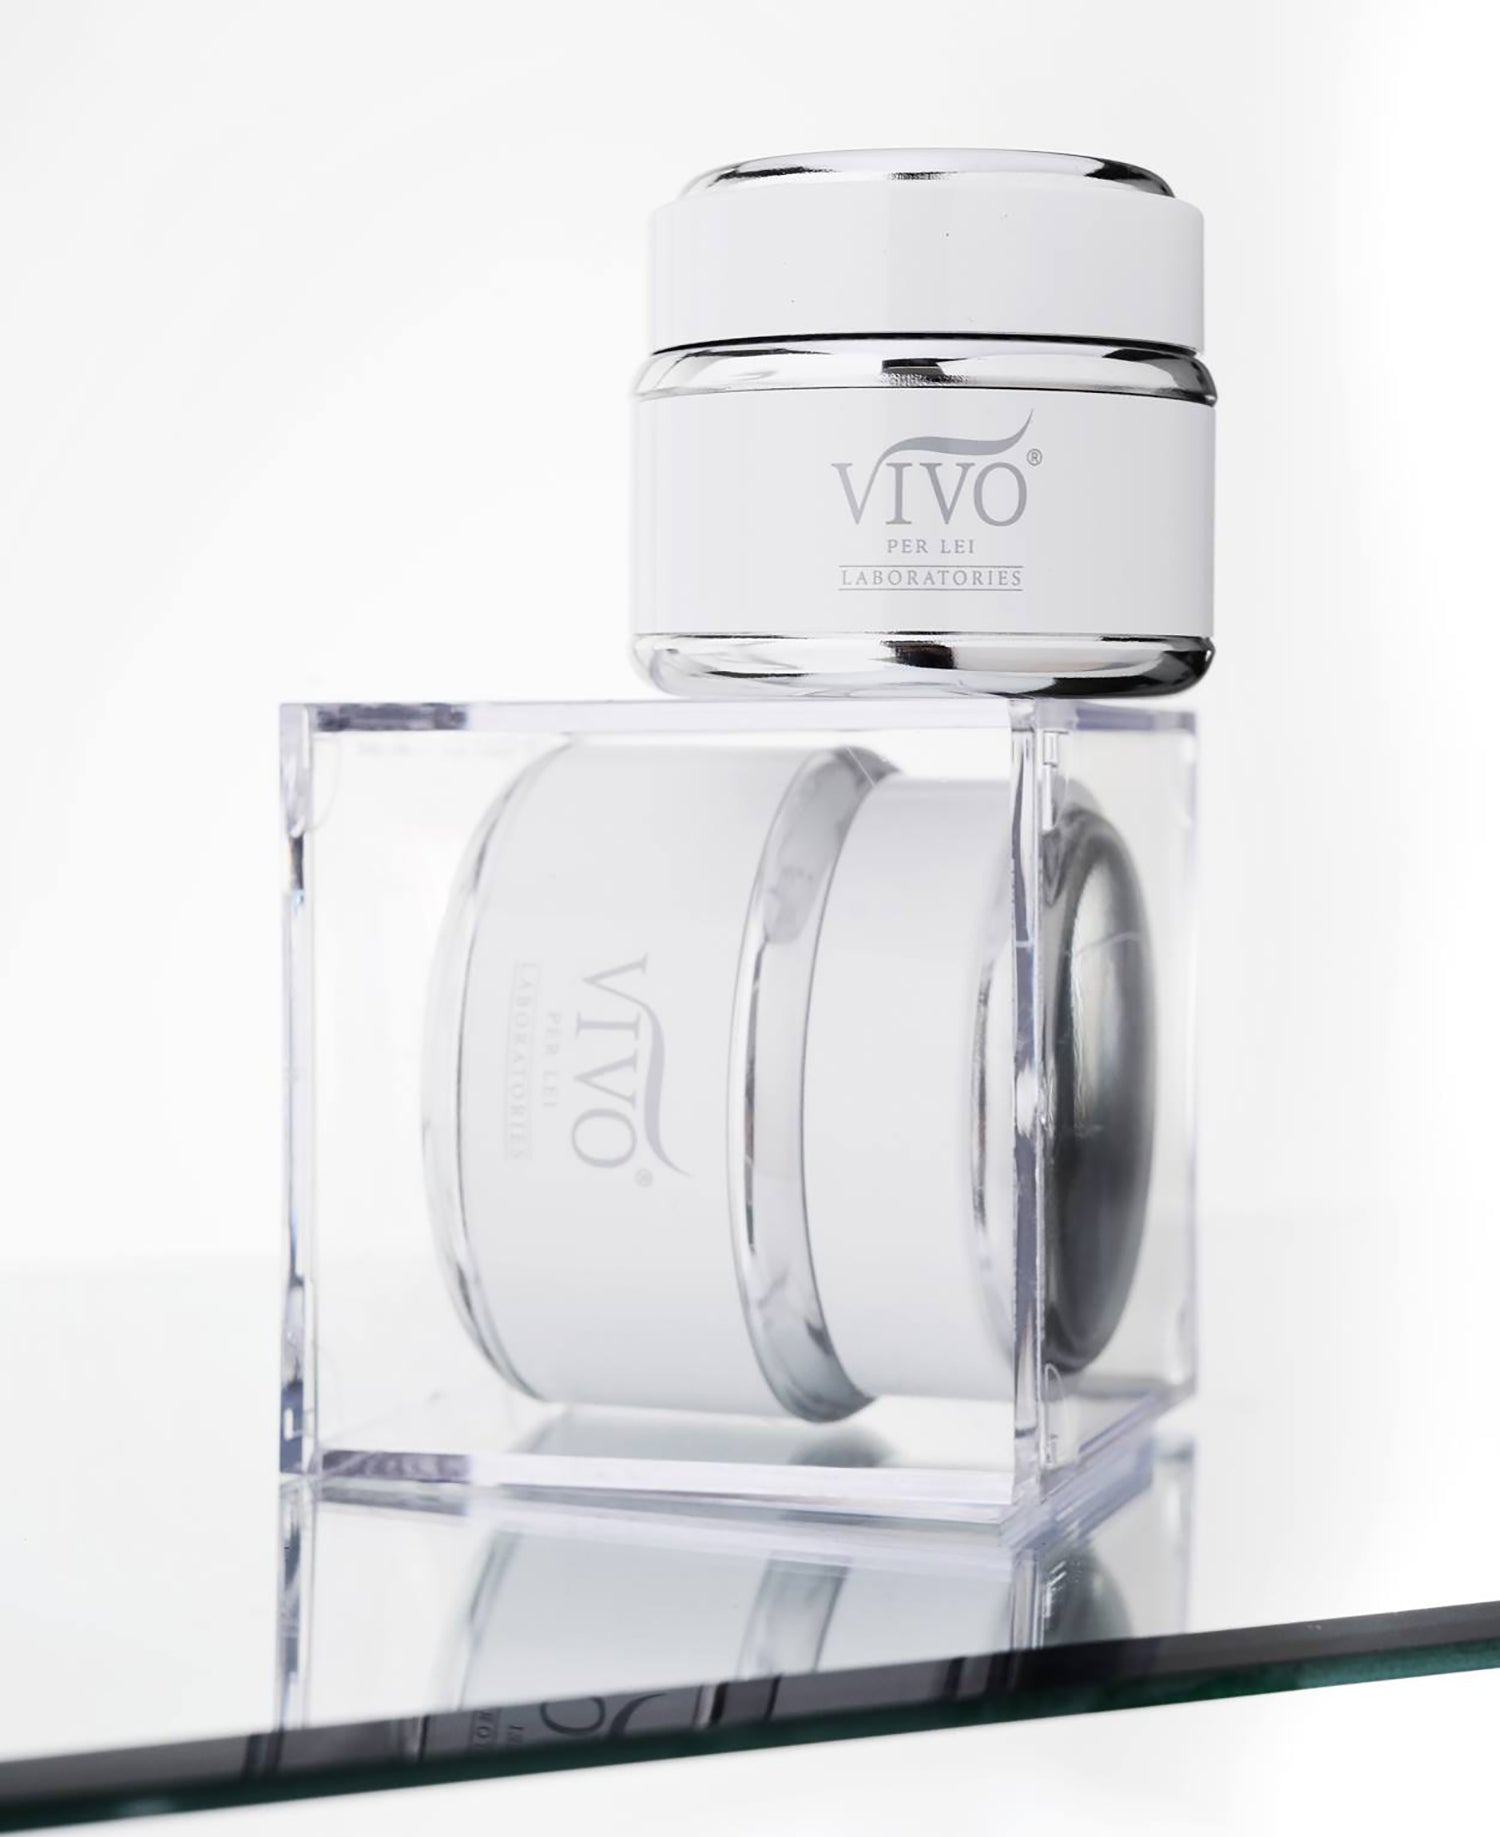 Vivo Per Lei Under Eye Cream